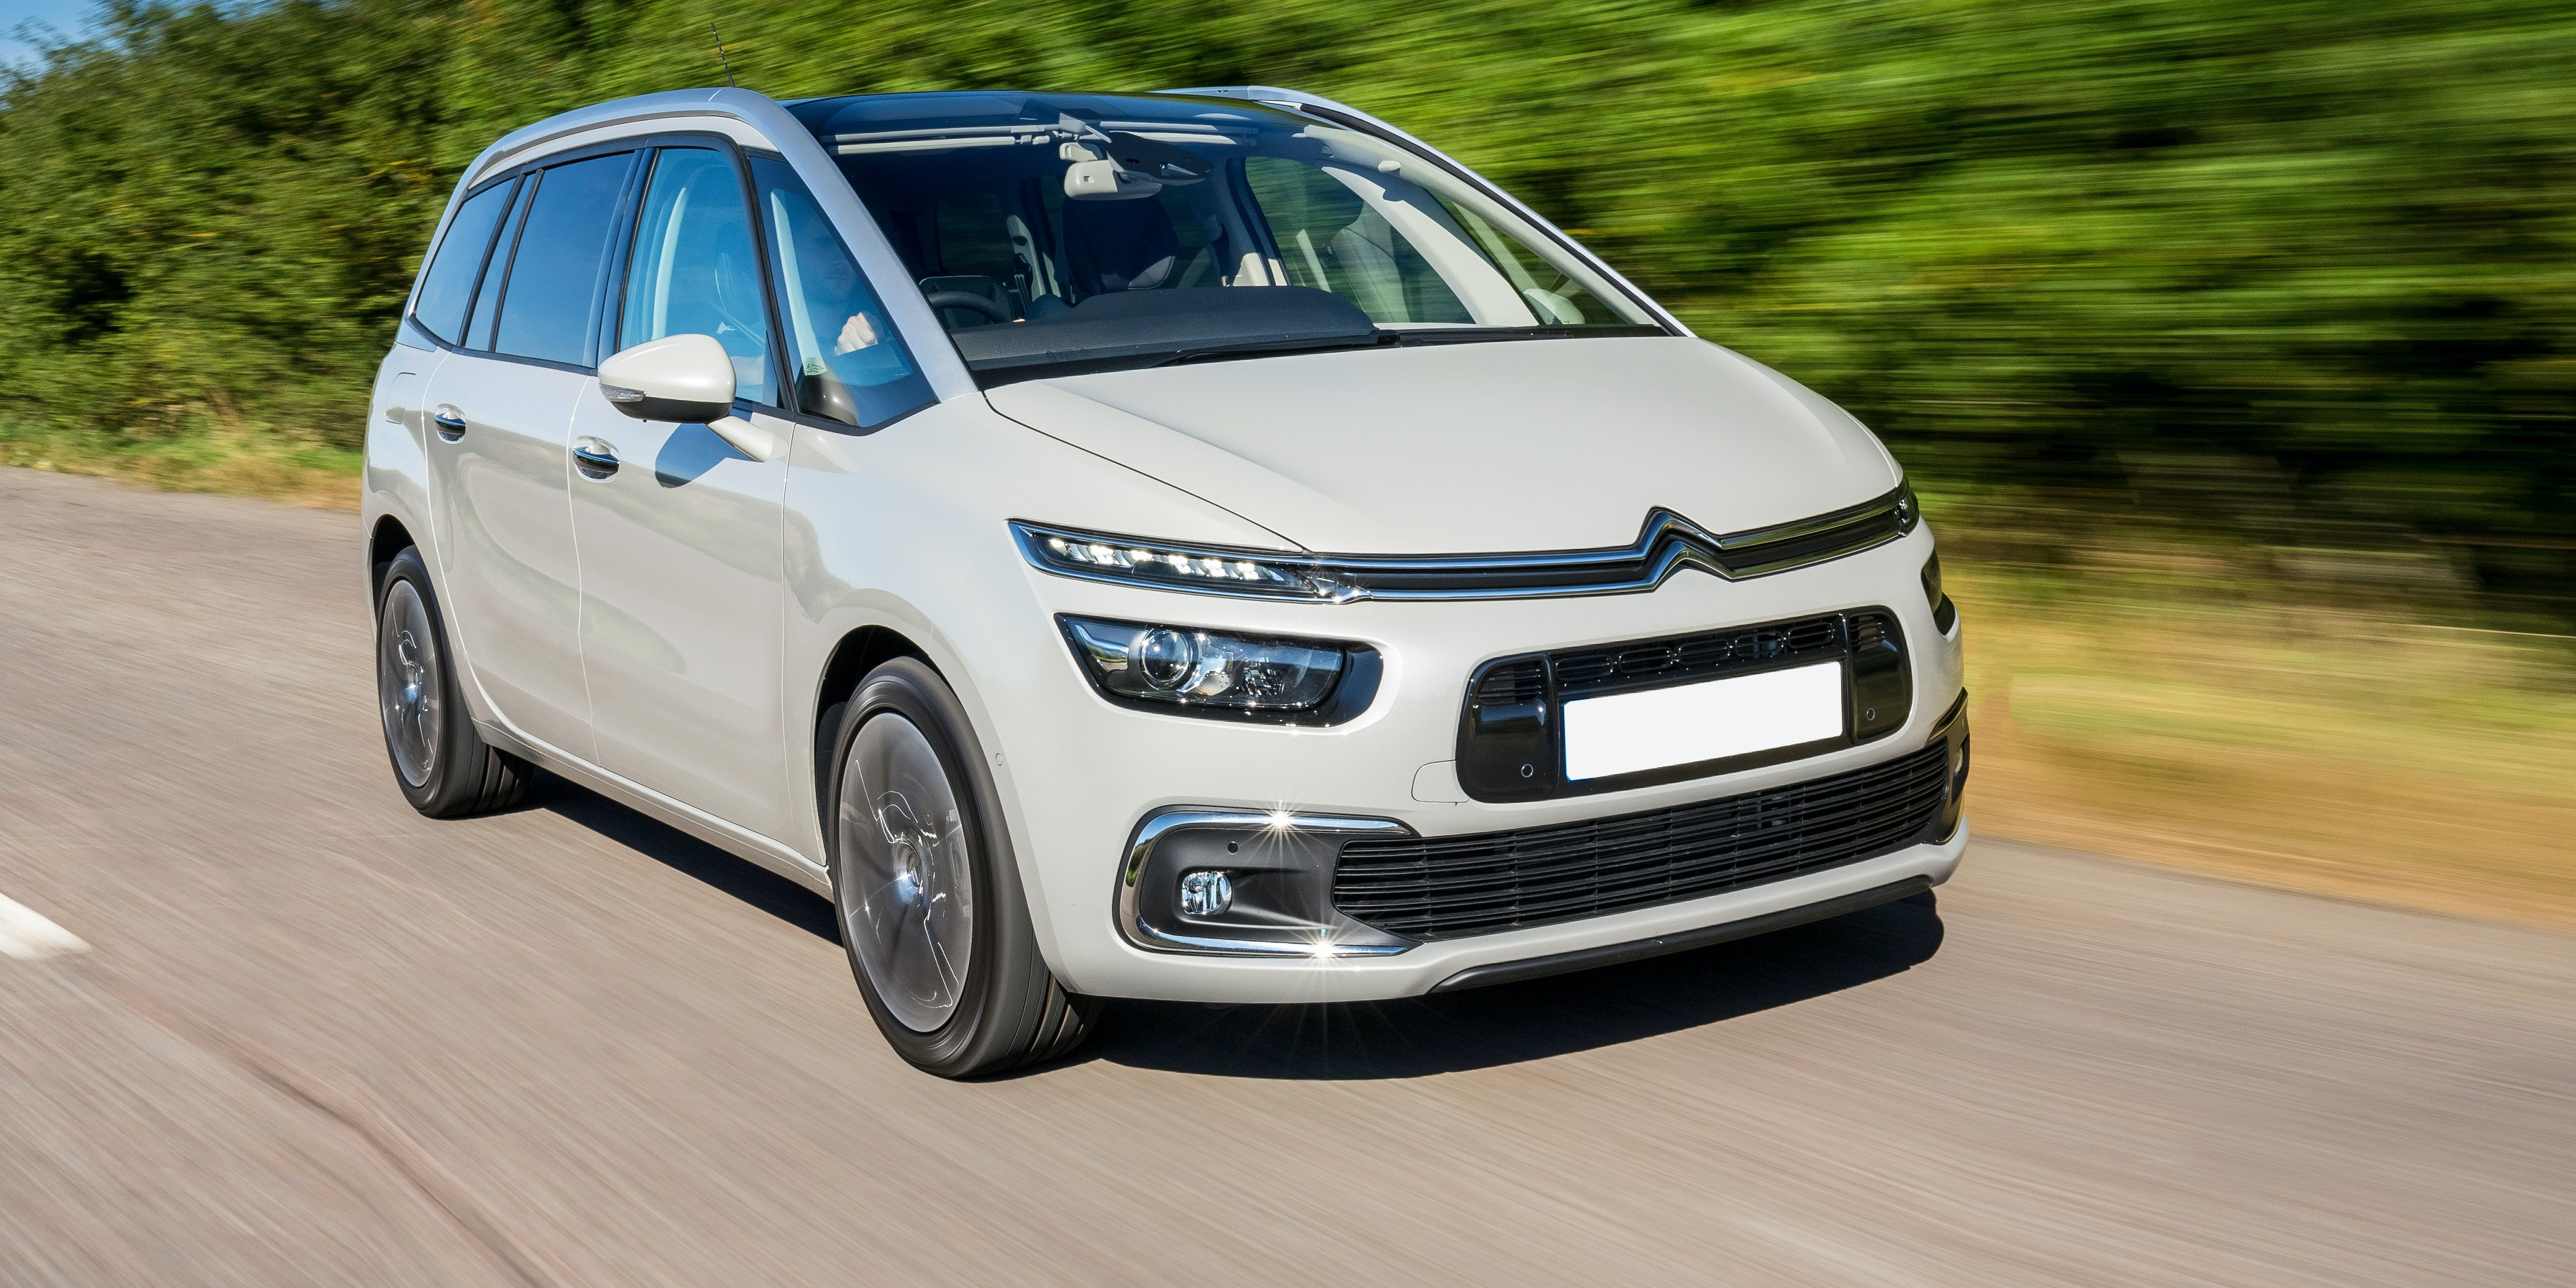 Rb Car Company >> Citroen C4 Grand Picasso Review | carwow